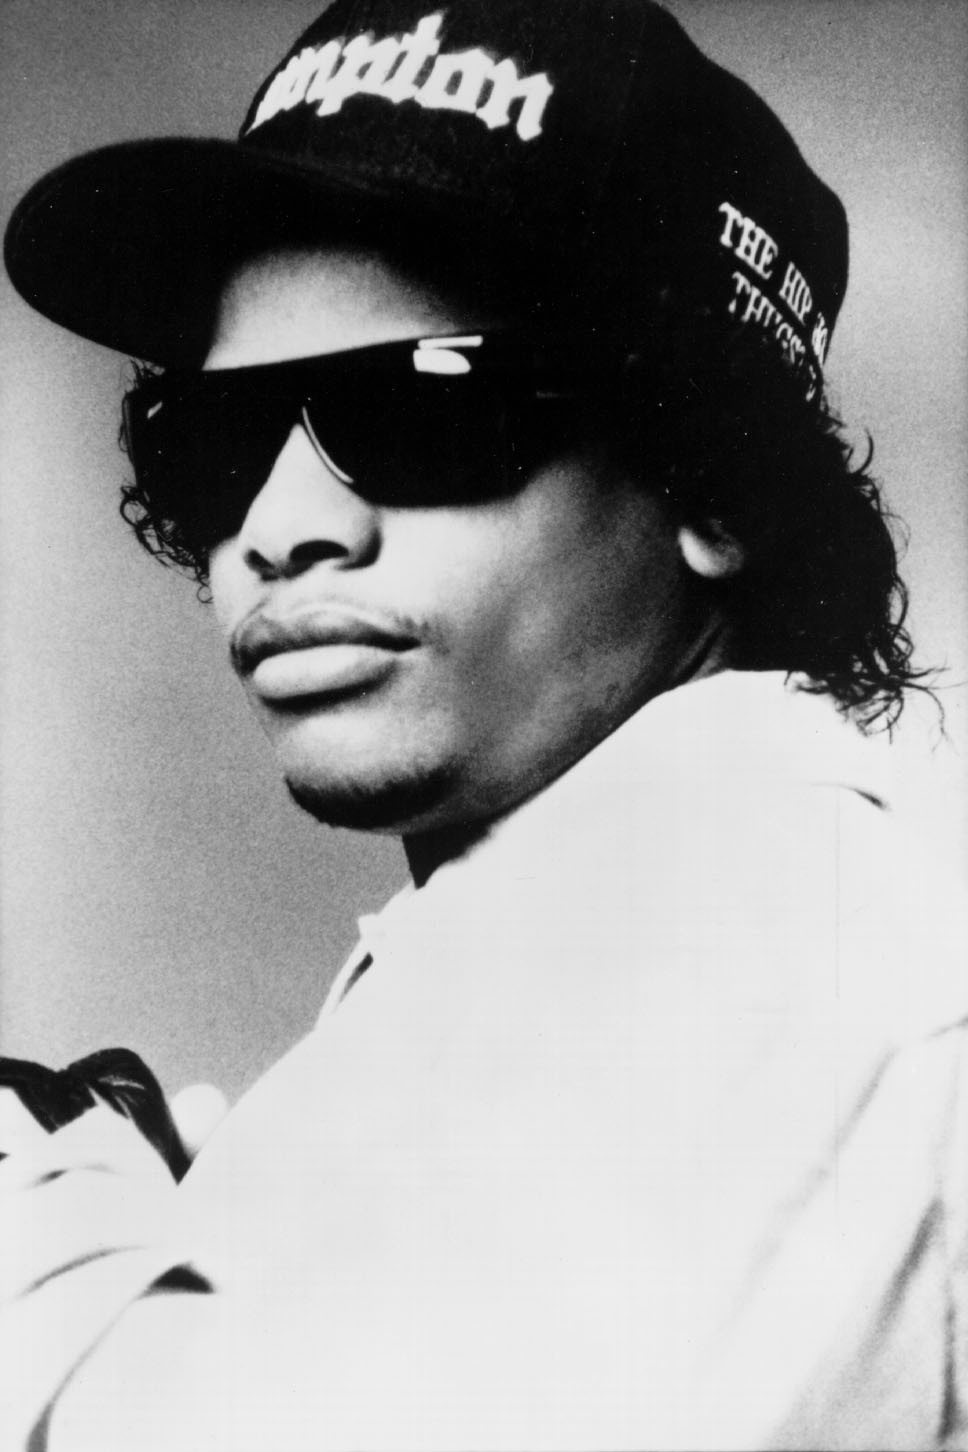 The Mysterious Conspiracy Theory Behind Eazy-E'-s Death